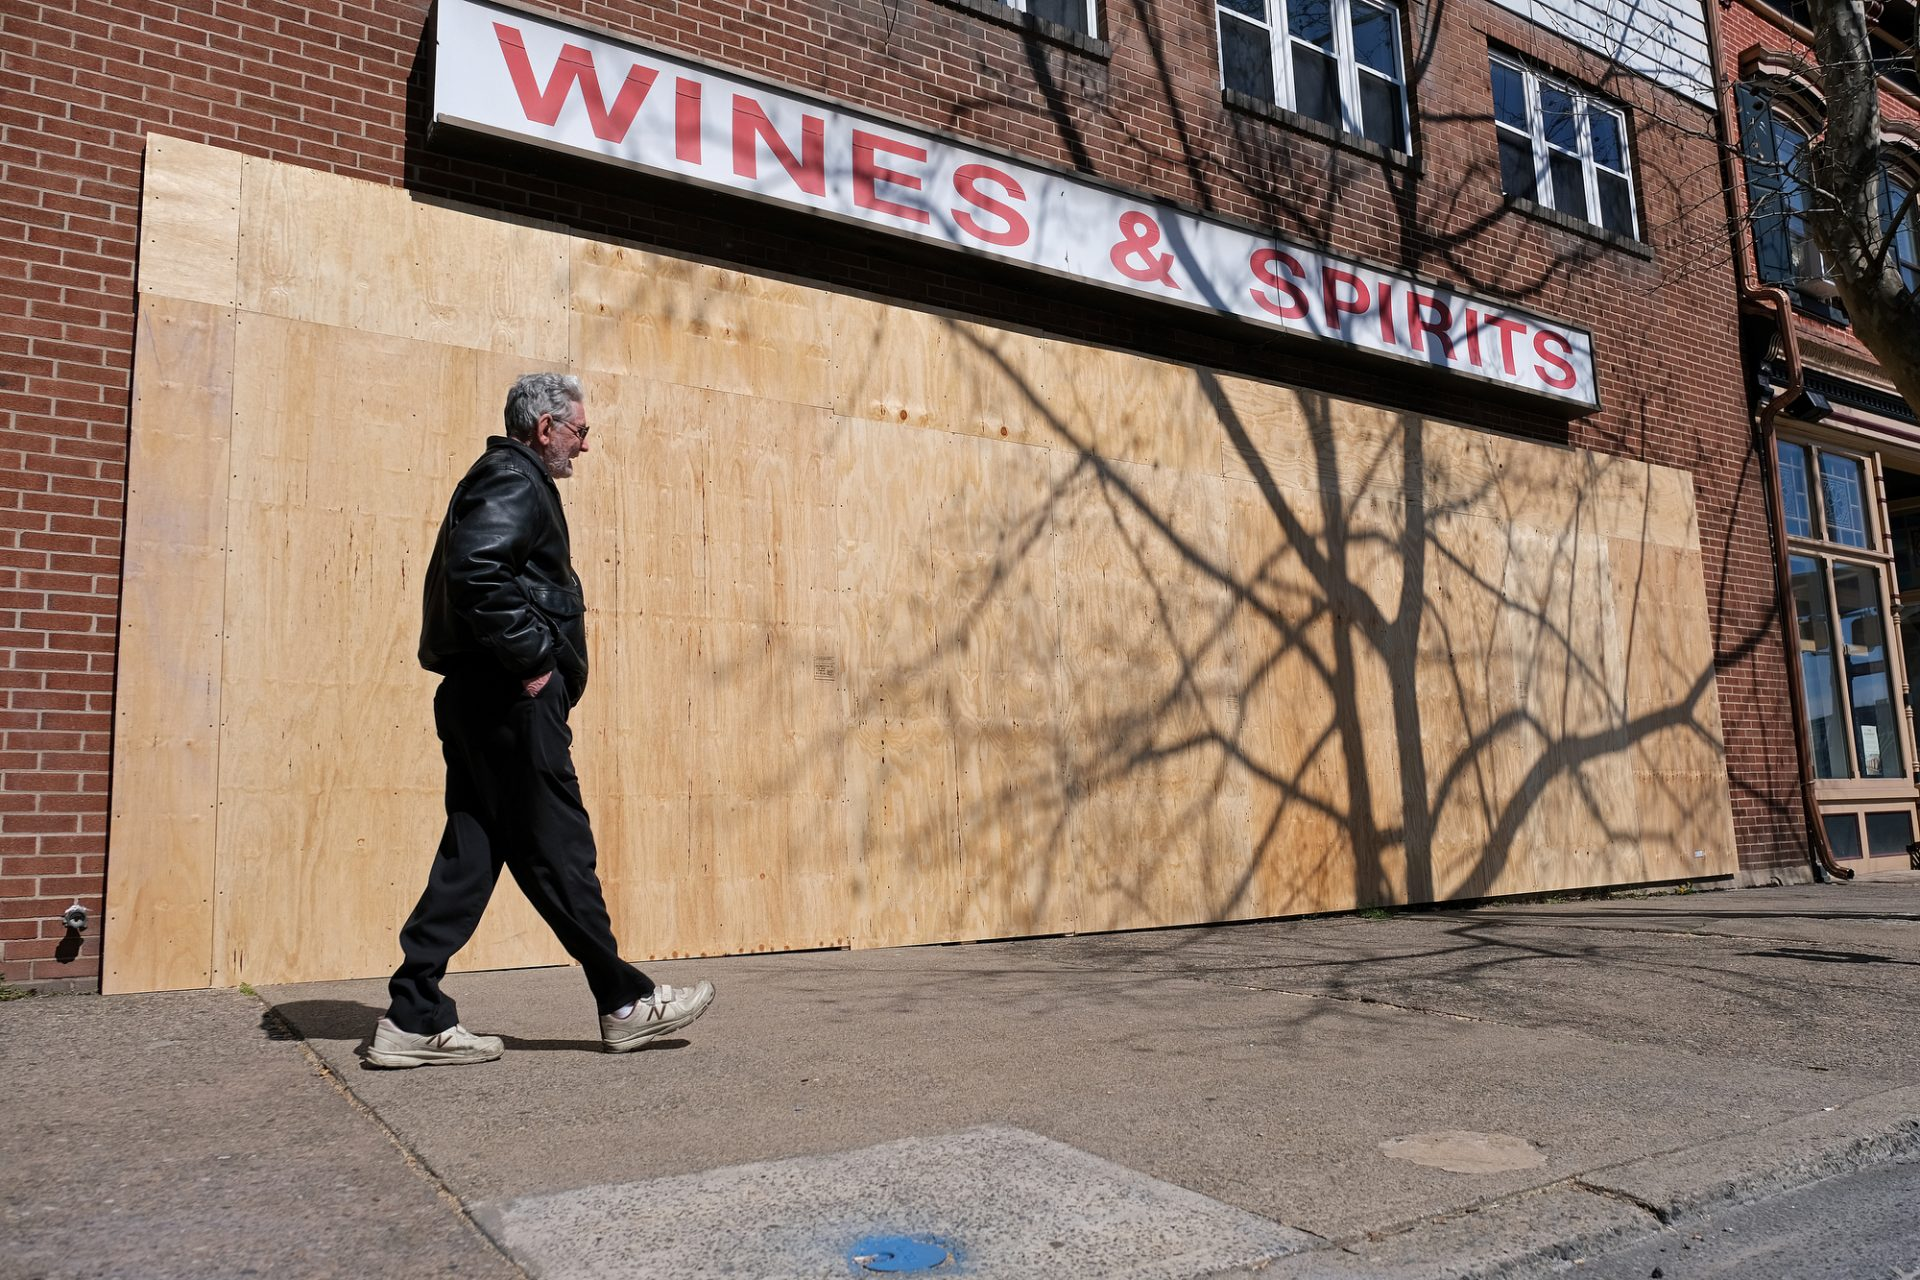 A boarded up Wine and Spirits store in Easton, Pennsylvania.